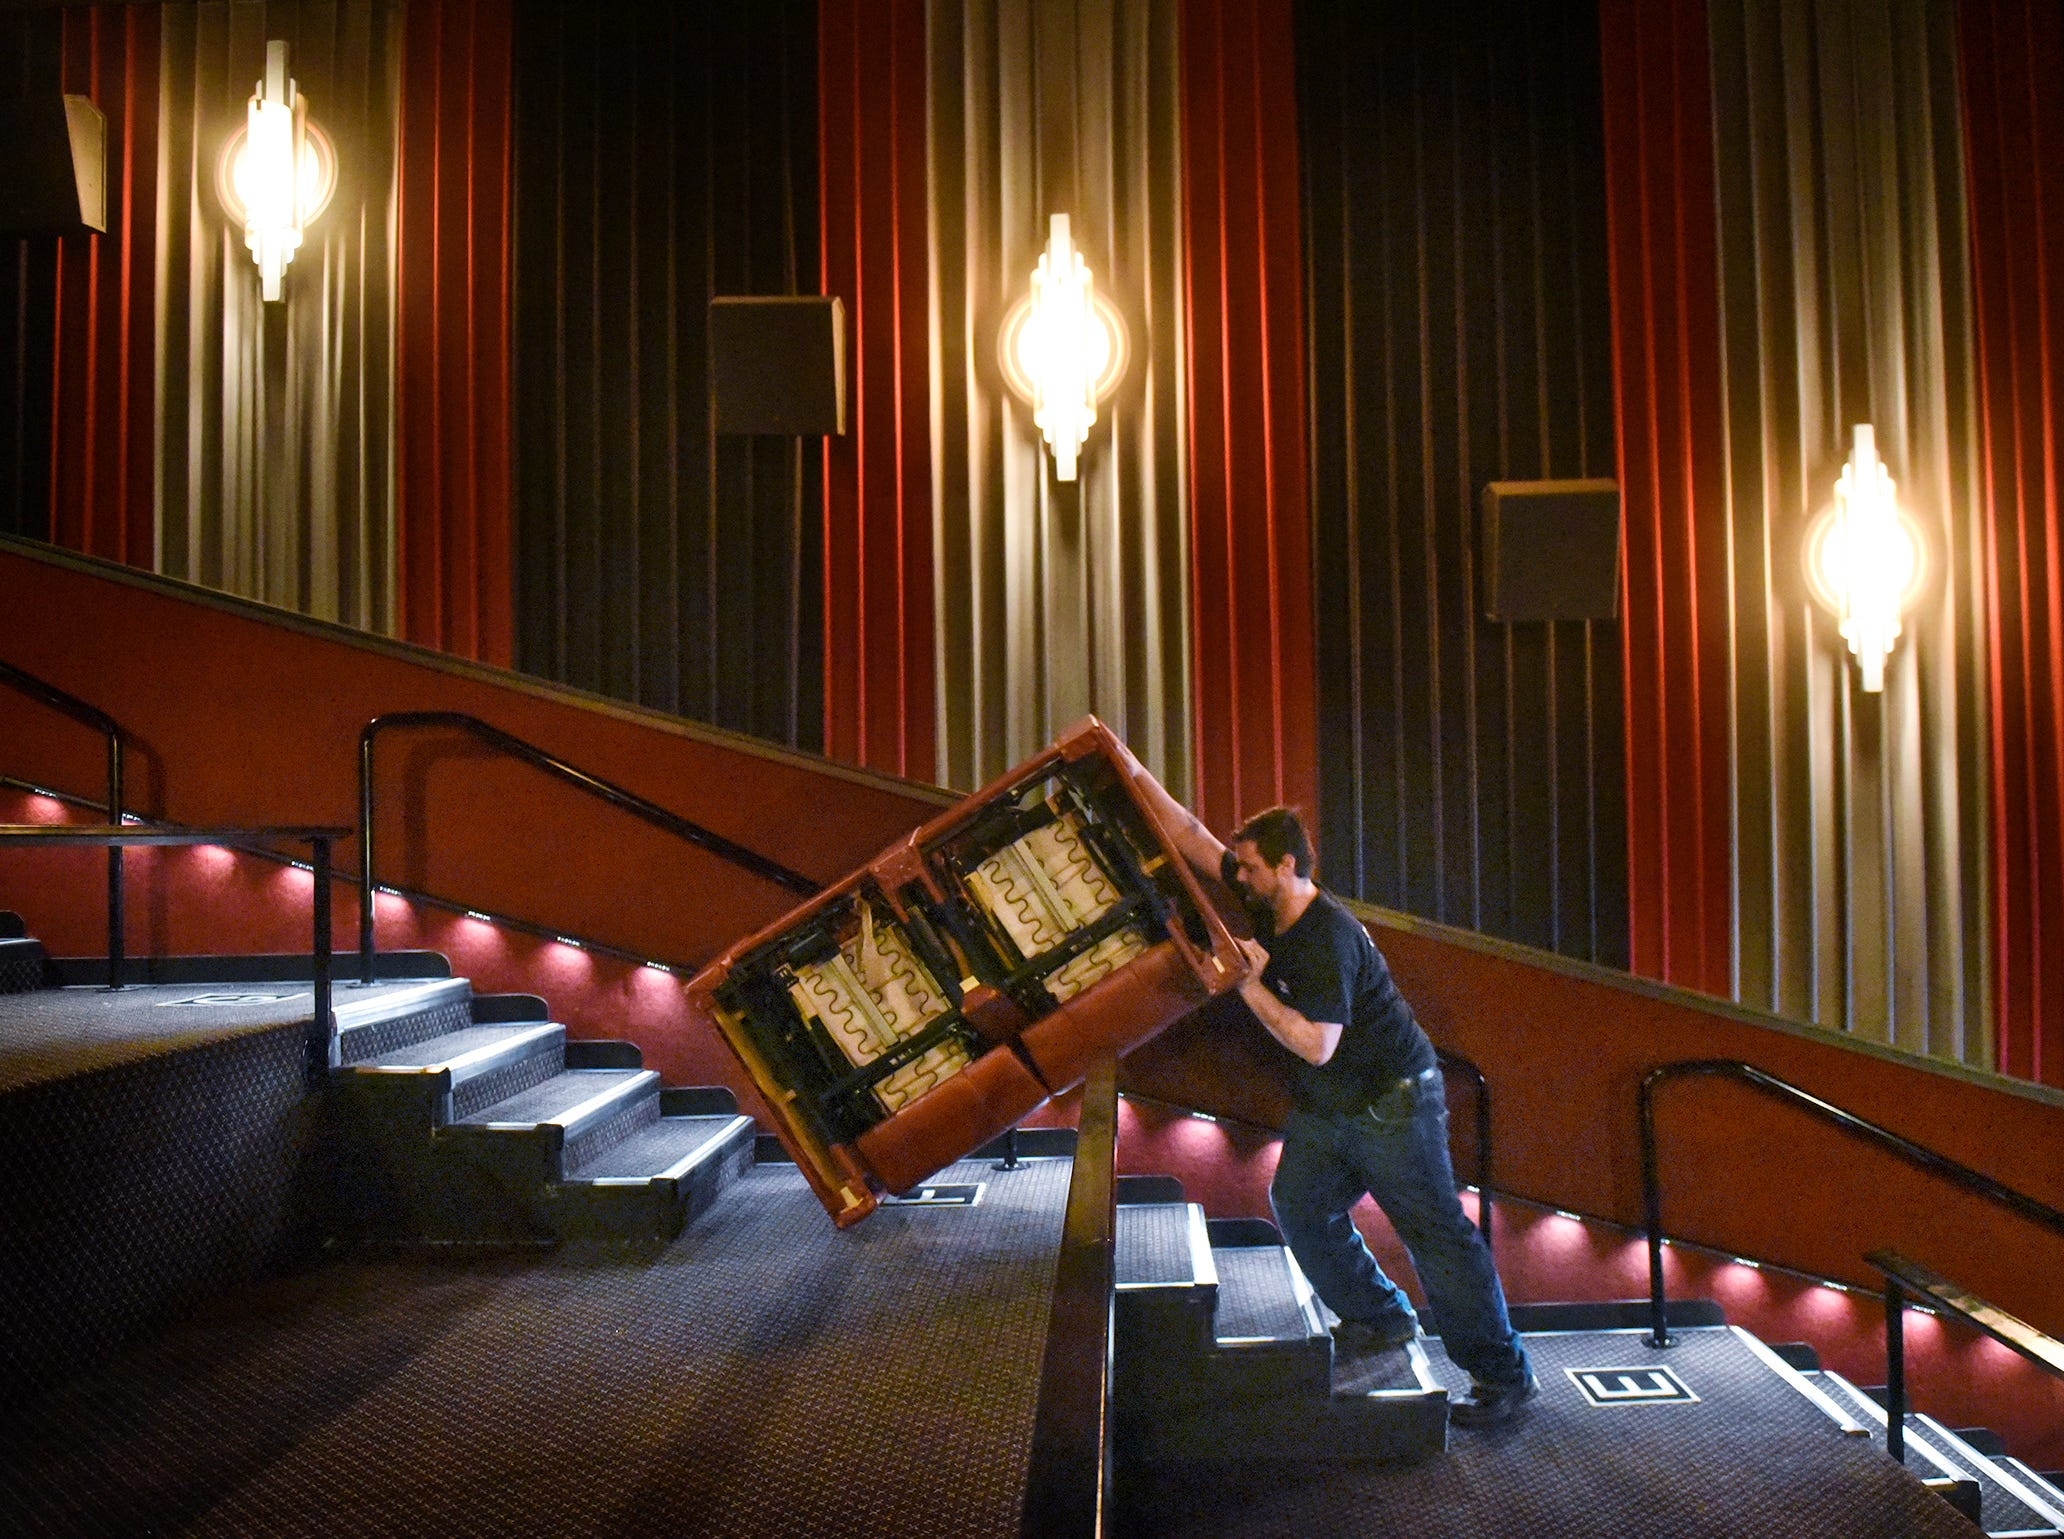 Michael Ferragina muscles a new DreamLounger recliner seat into place Wednesday, April 18, at Marcus Parkwood Cinema in Waite Park.